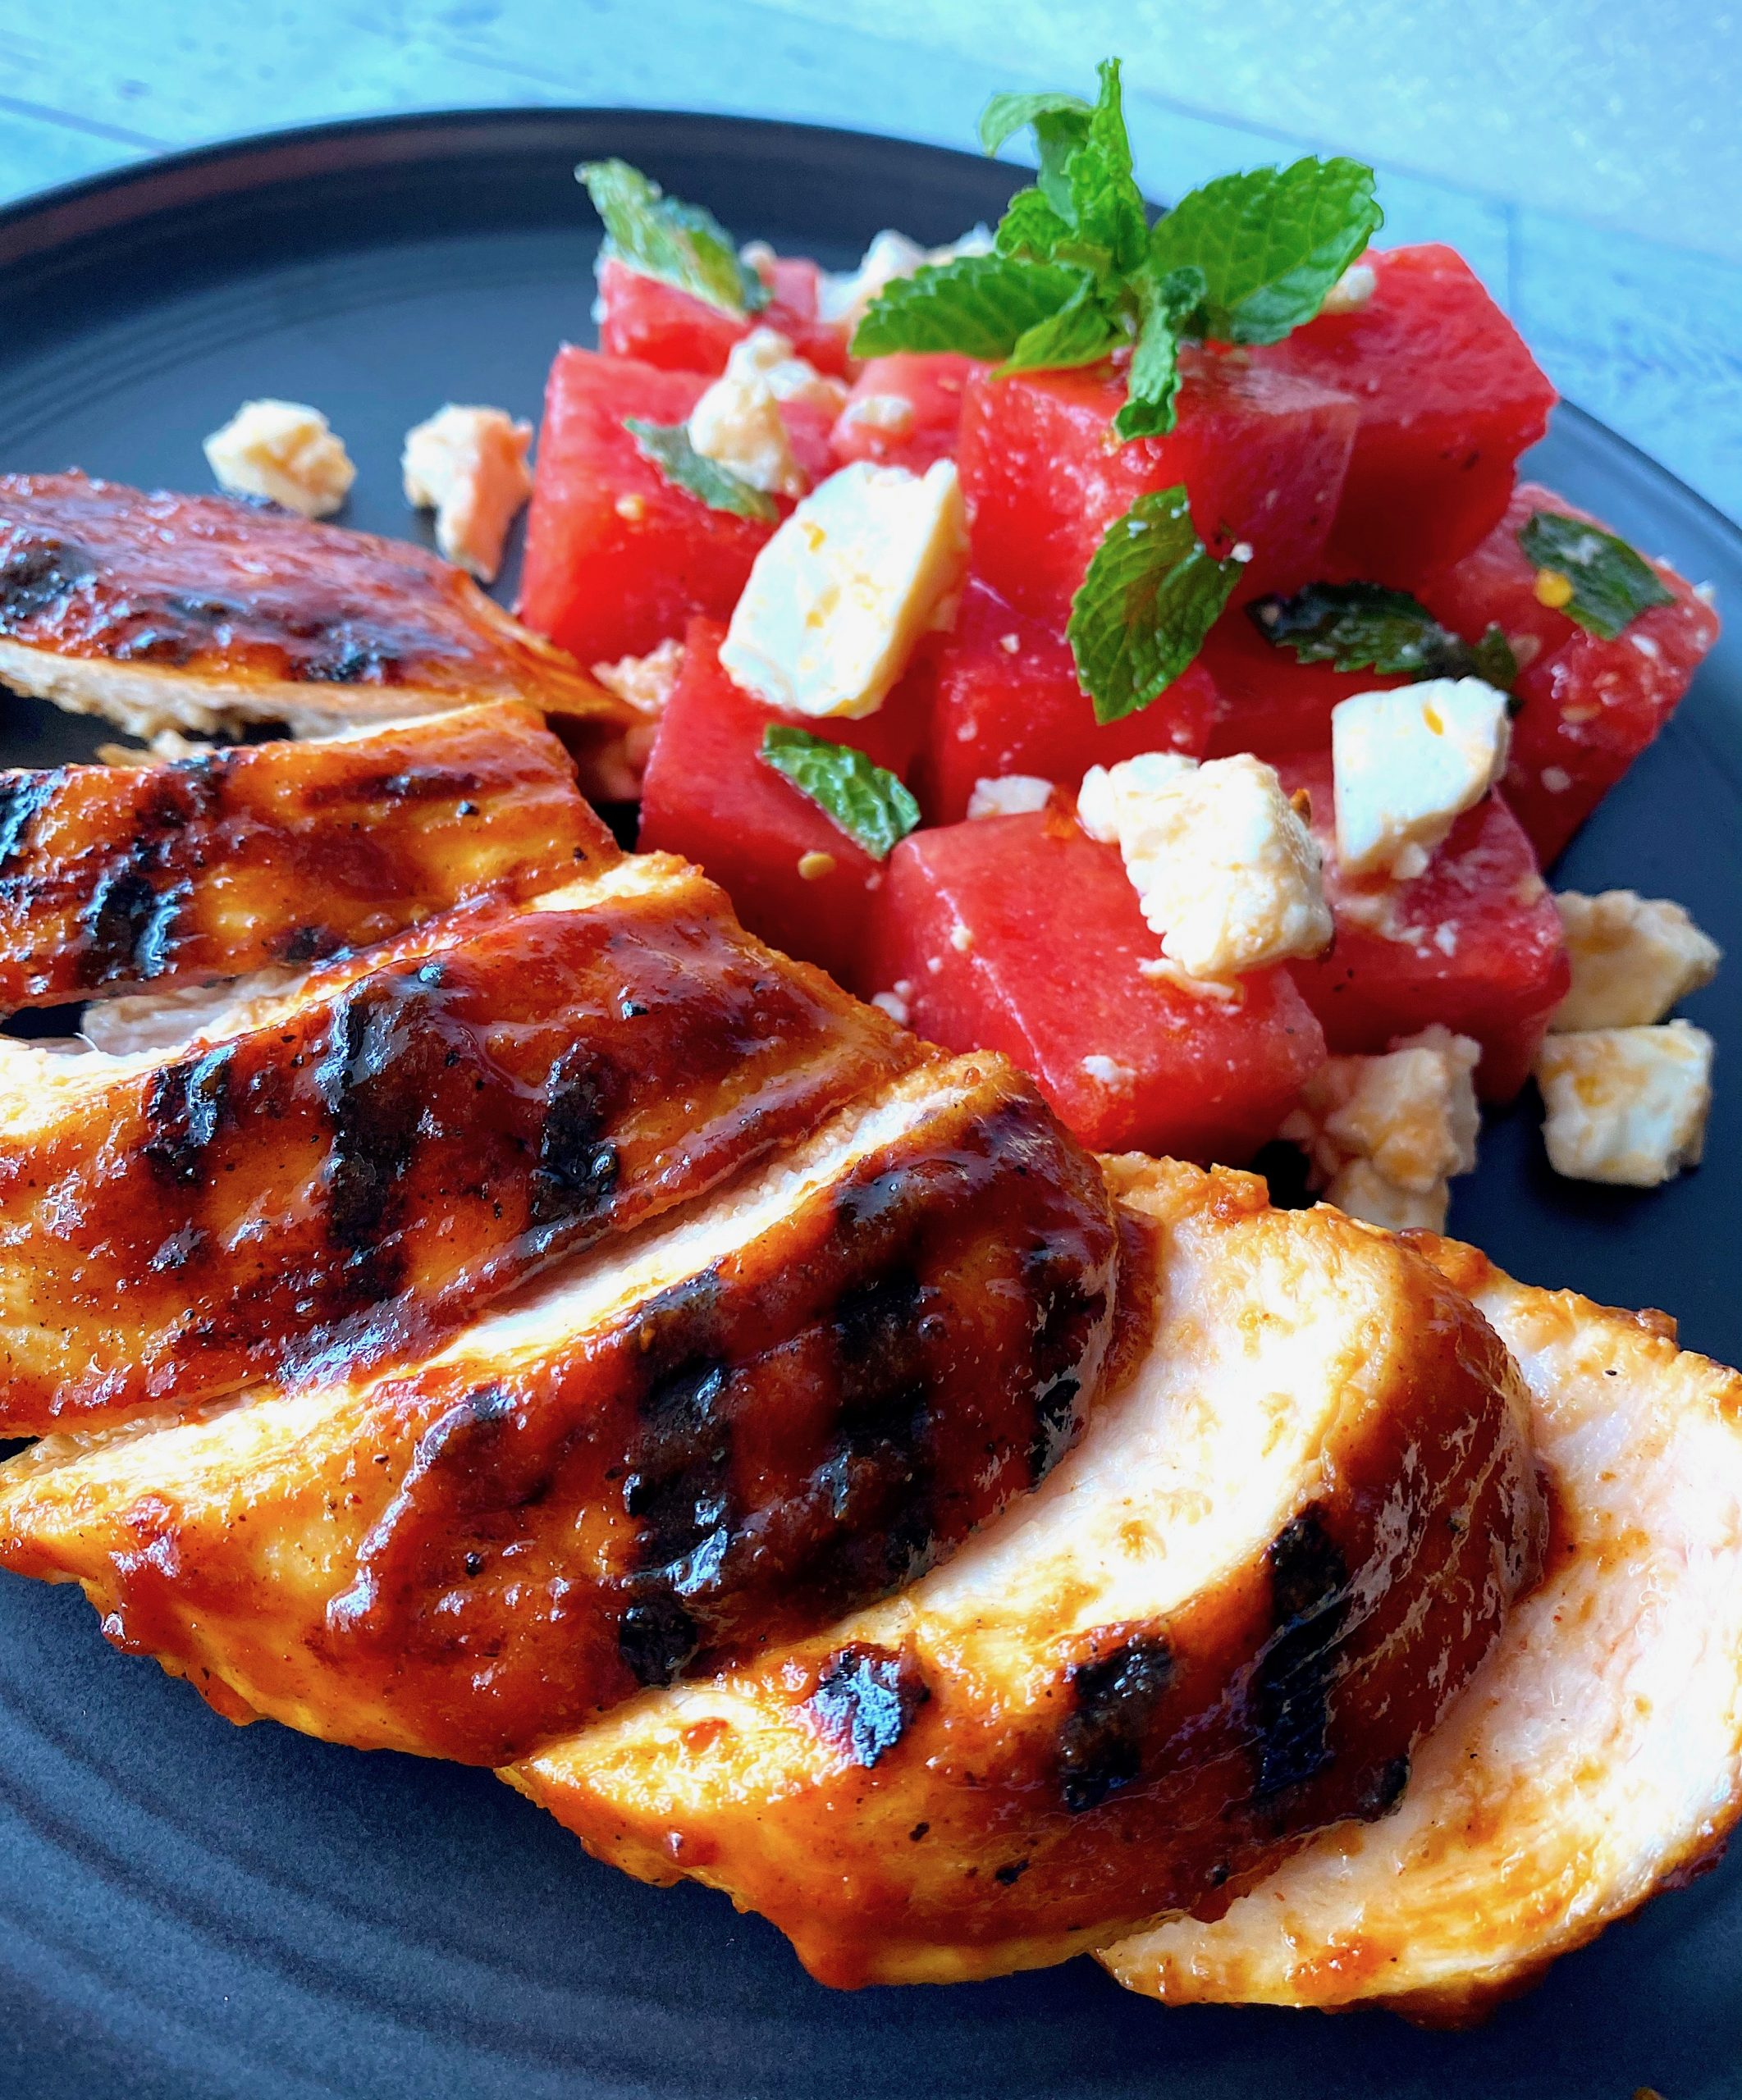 chicken breast with bbw sauce and a watermelon salad